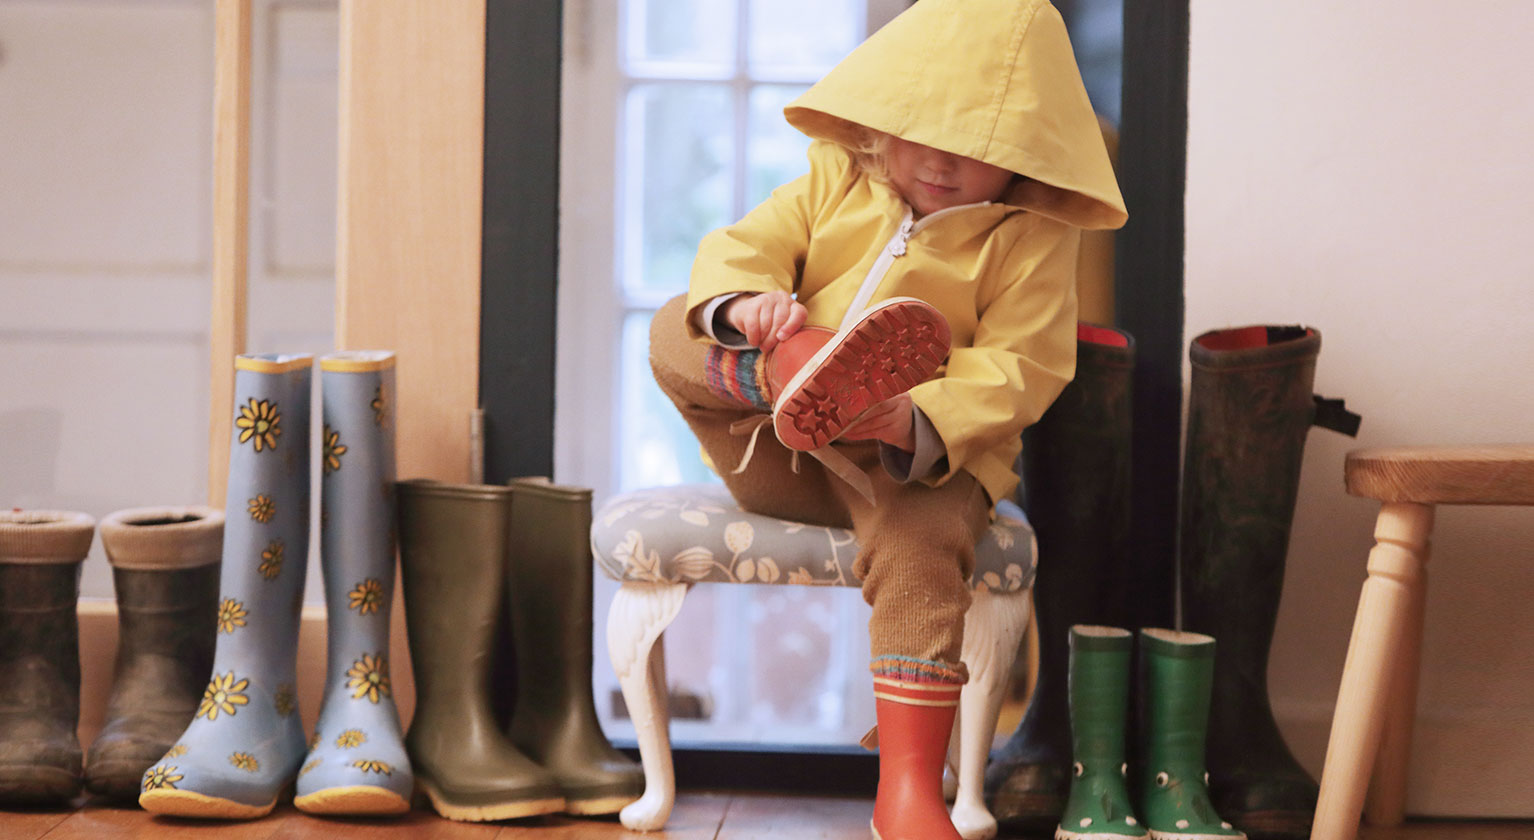 Child putting on wellies